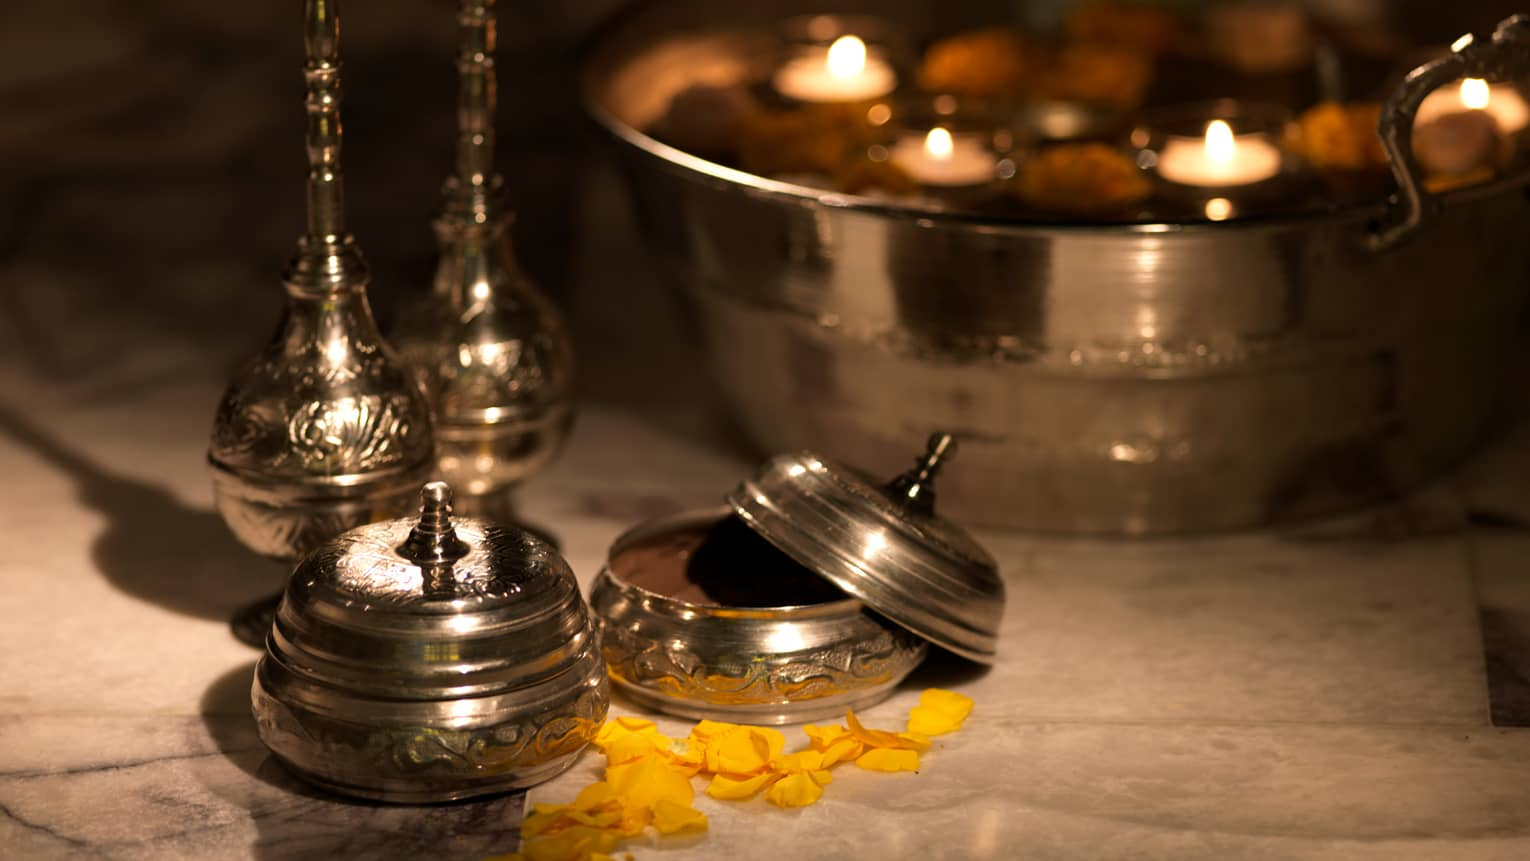 Spa ingredients lay on table with metal containers, a bowl with floating votive candles